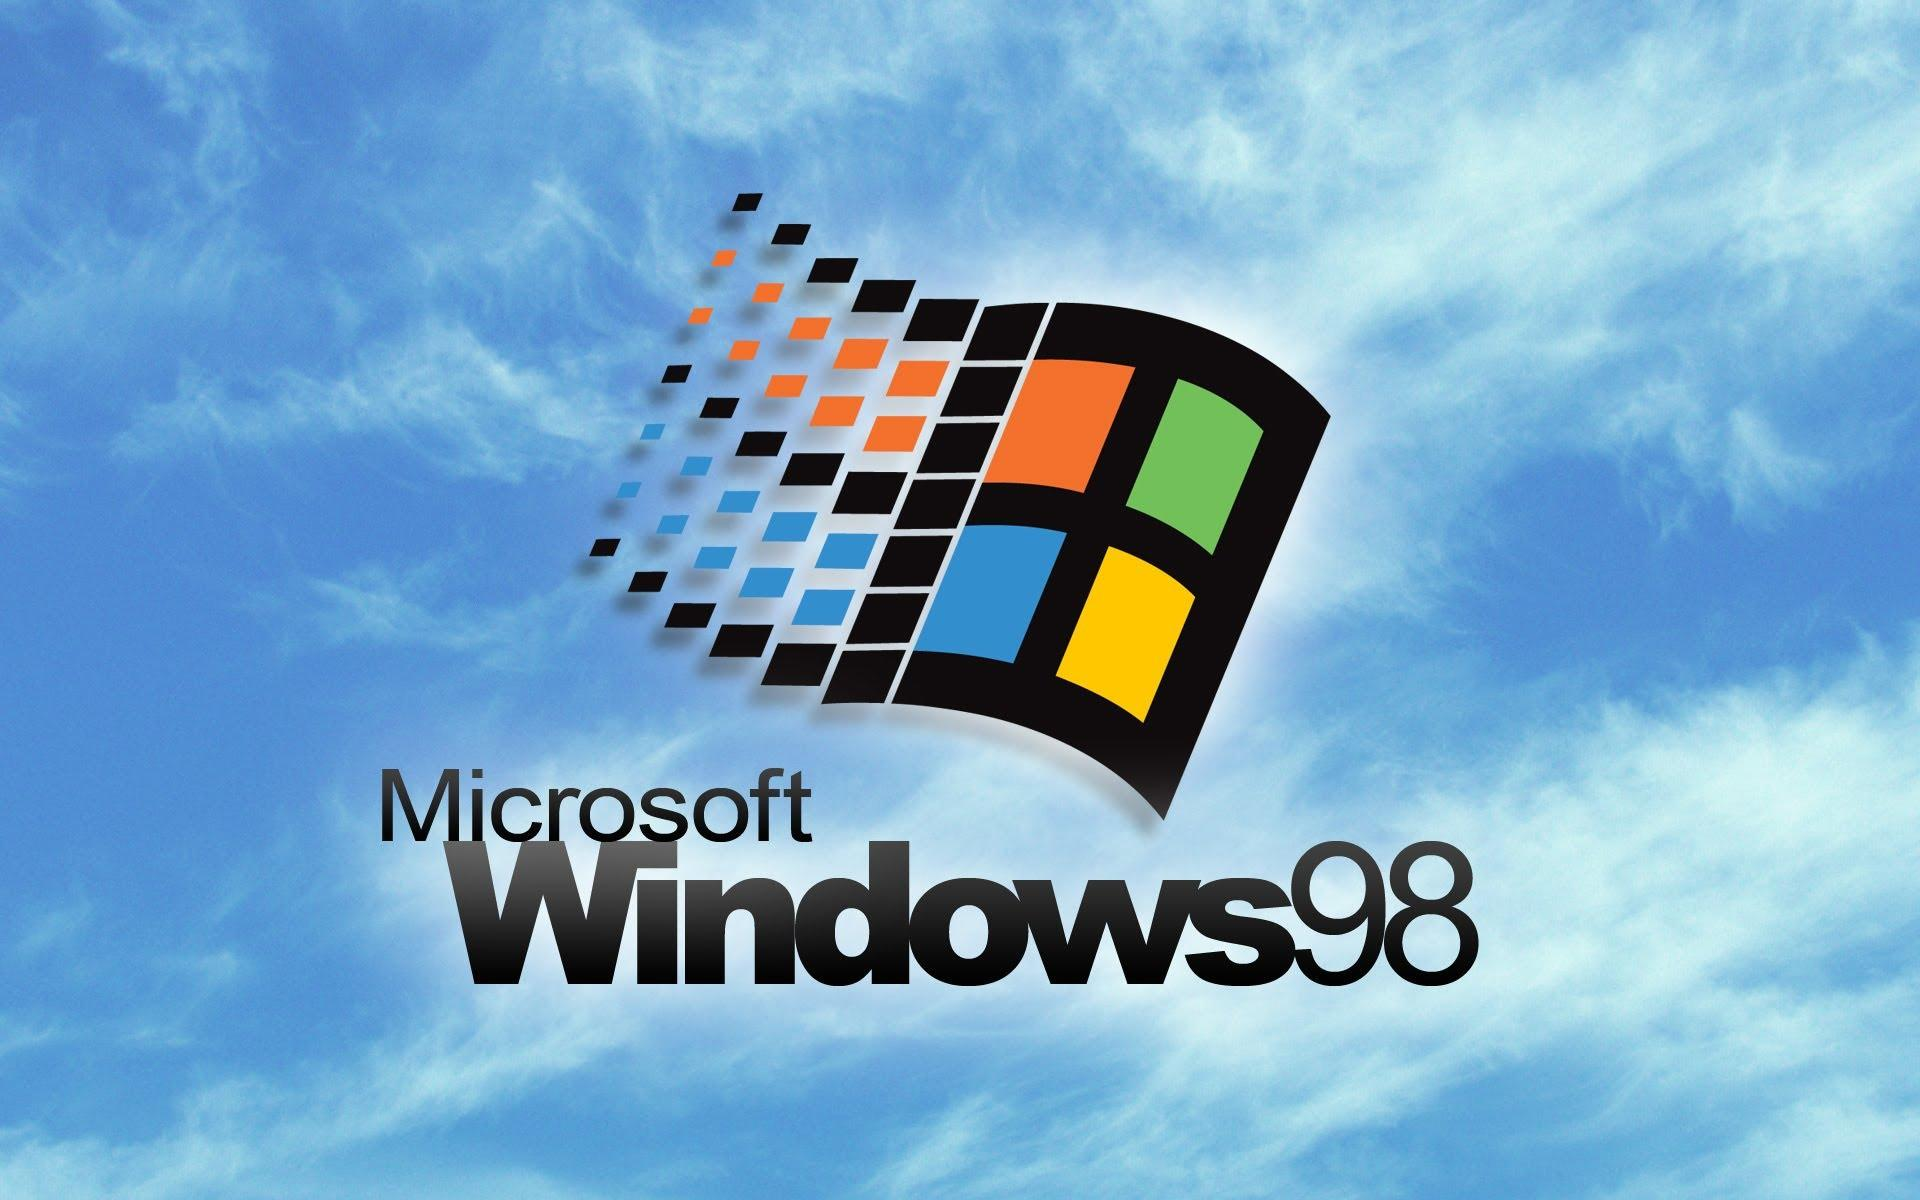 windows 98 background pictures